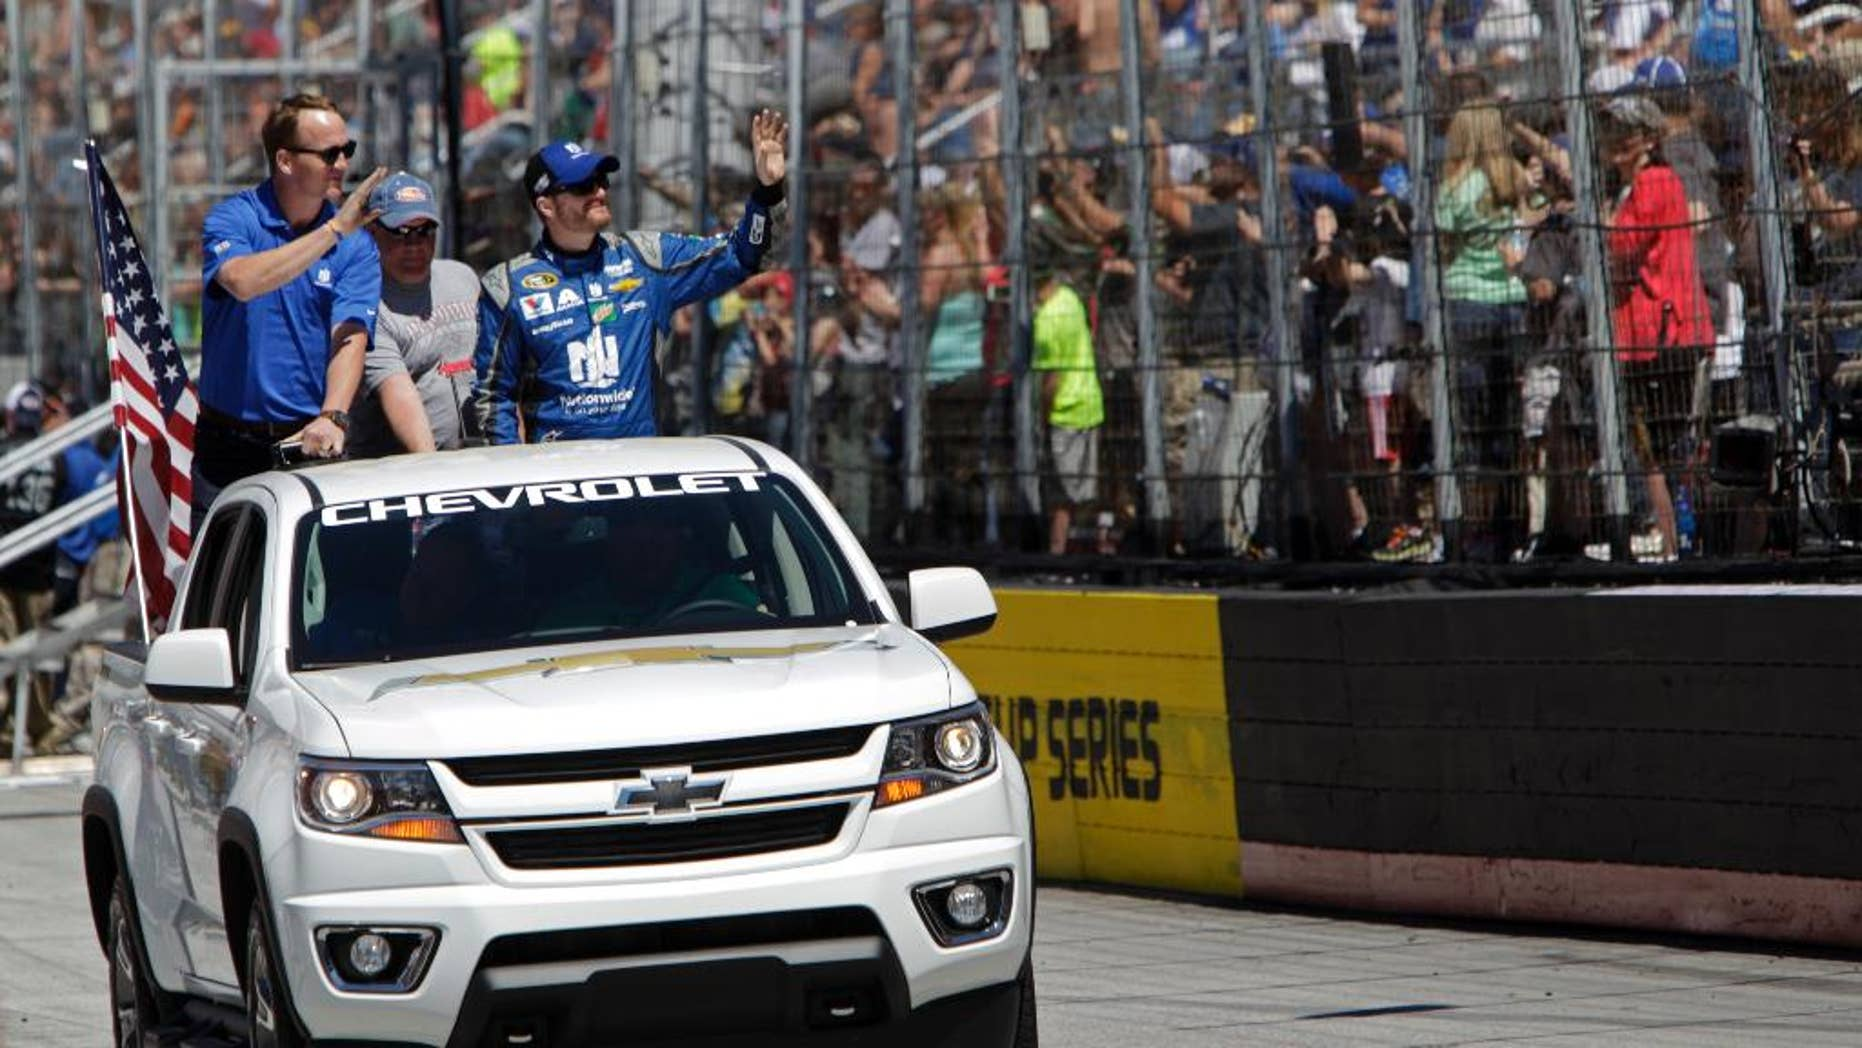 Former University of Tennessee and Denver Bronco's quarterback Peyton Manning, left, and driver Dale Earnhardt Jr. (88) wave to fans before a NASCAR Sprint Cup Series auto race, Sunday, April 17, 2016 in Bristol, Tenn. (AP Photo/Wade Payne)